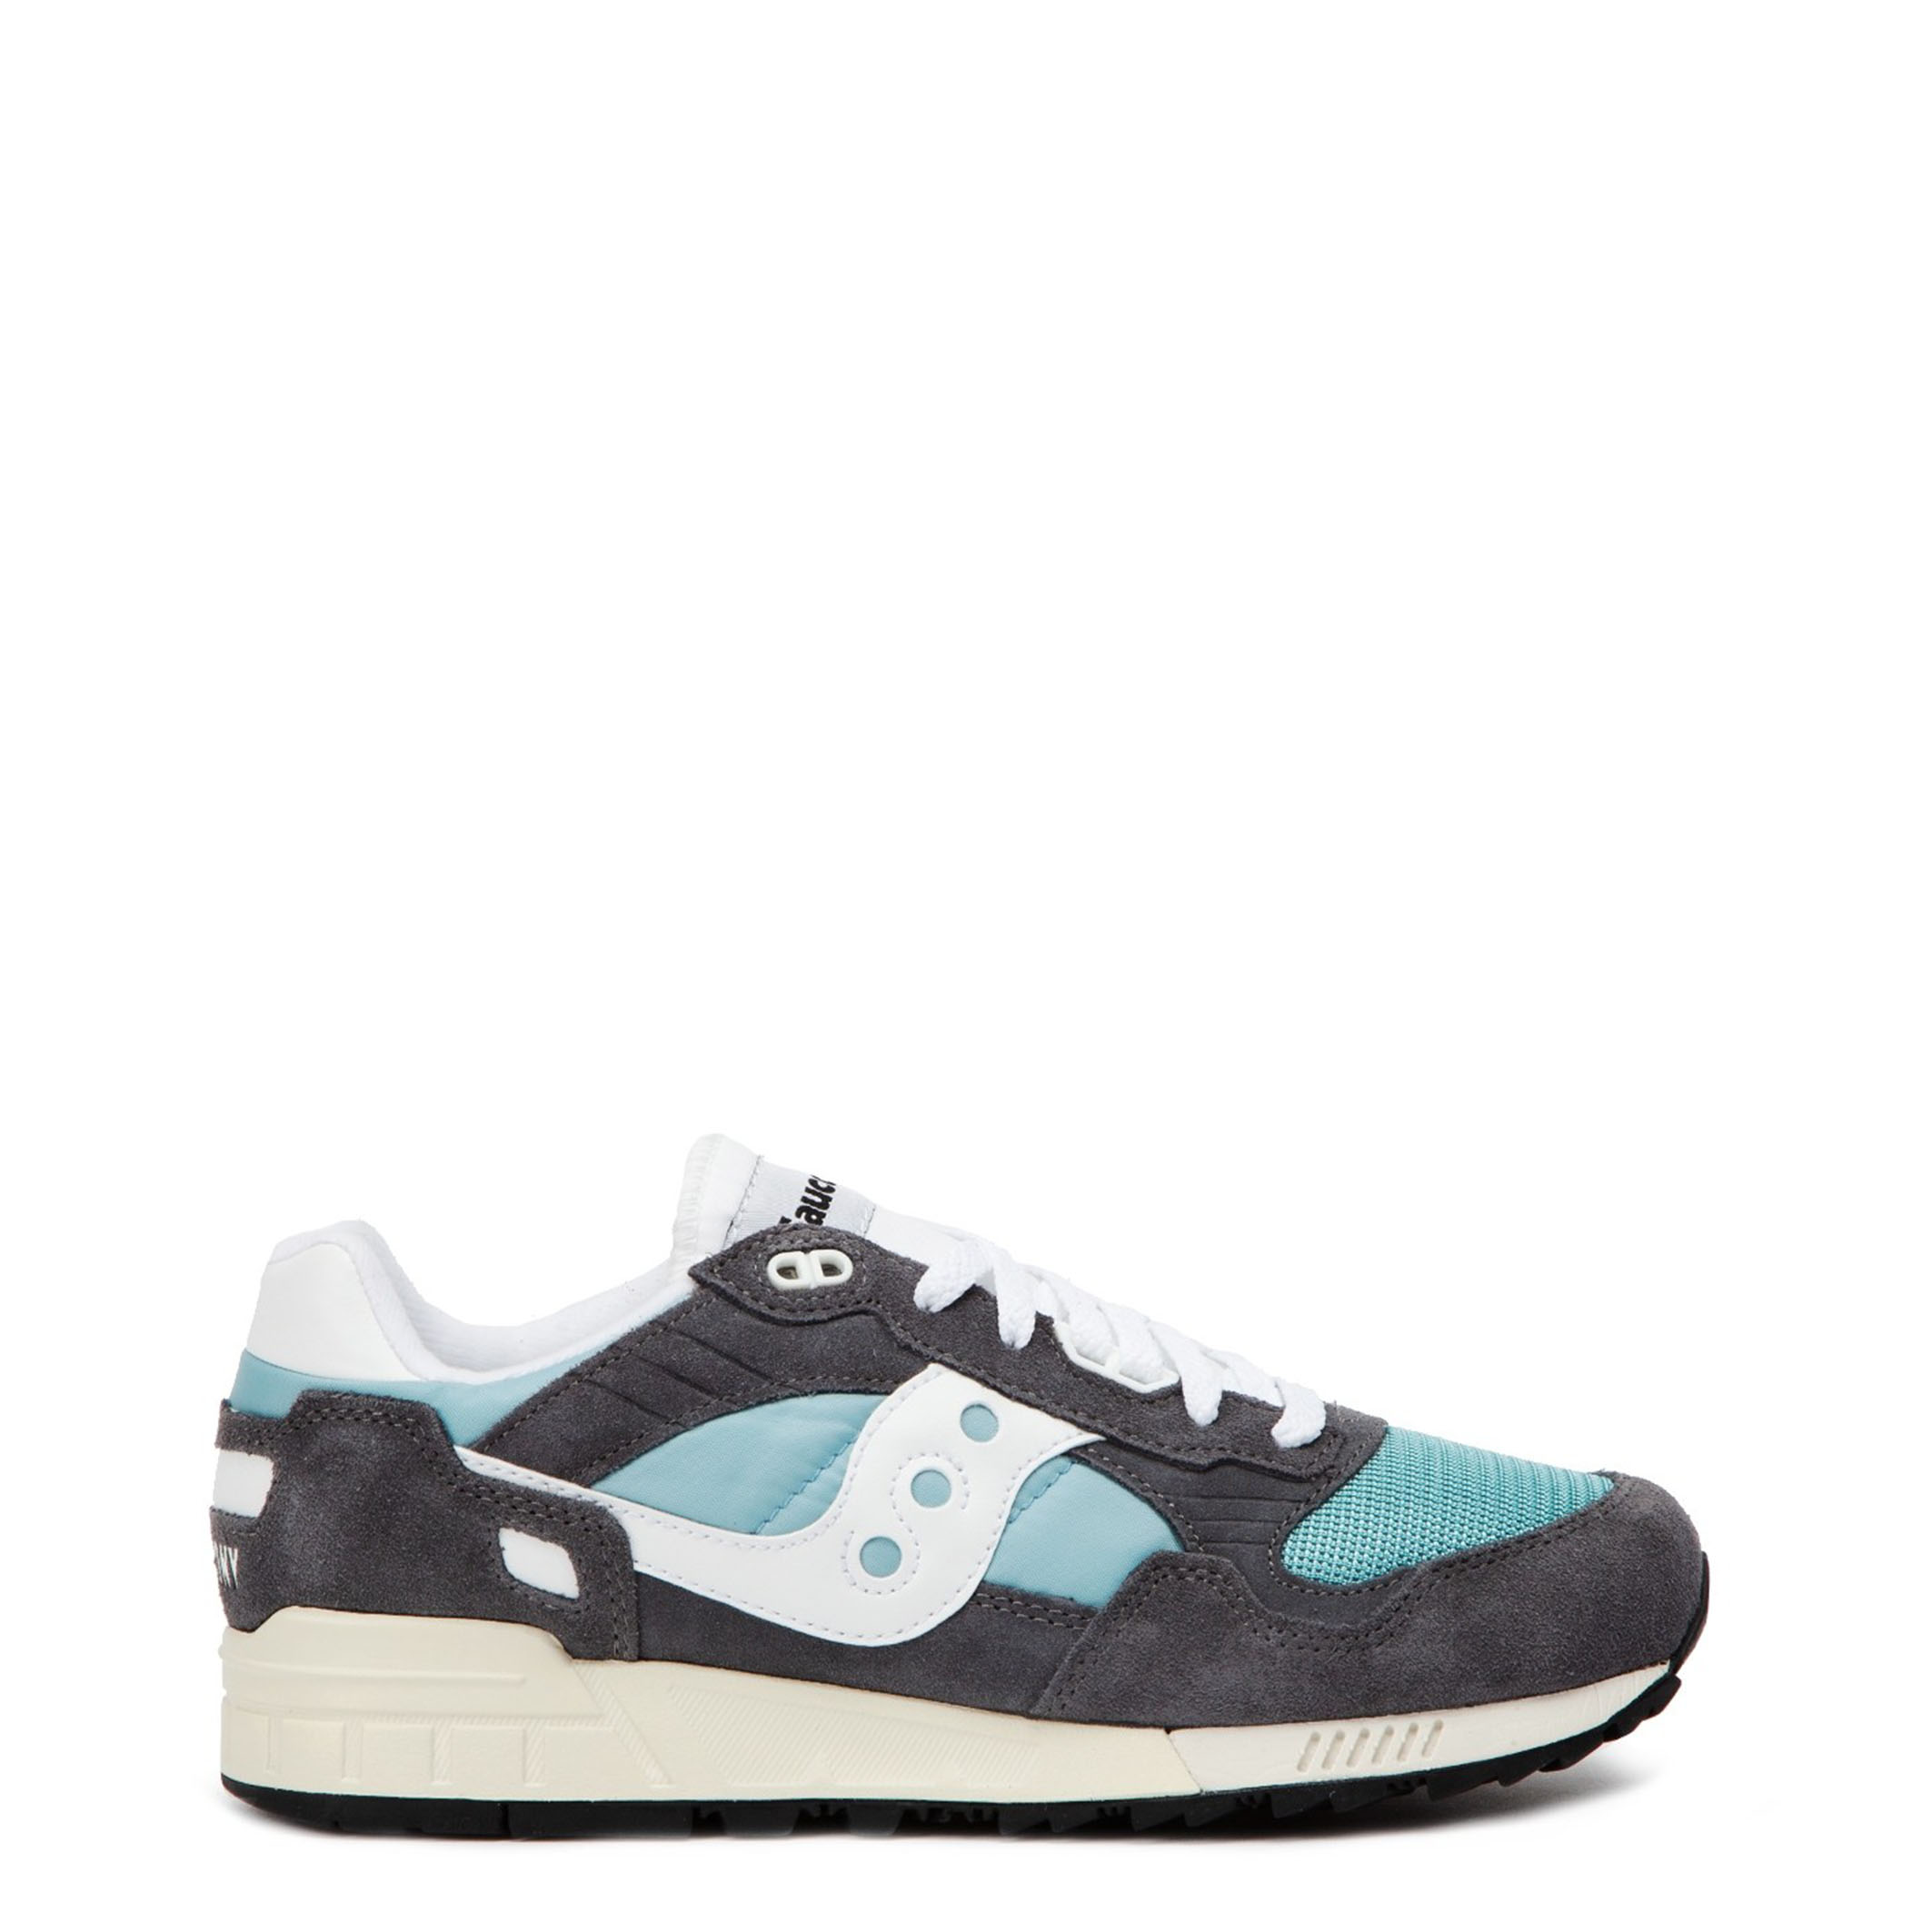 18f1b7260f shoes Saucony SHADOW 5000, grey men Sneakers nbkbtd6062-Athletic ...